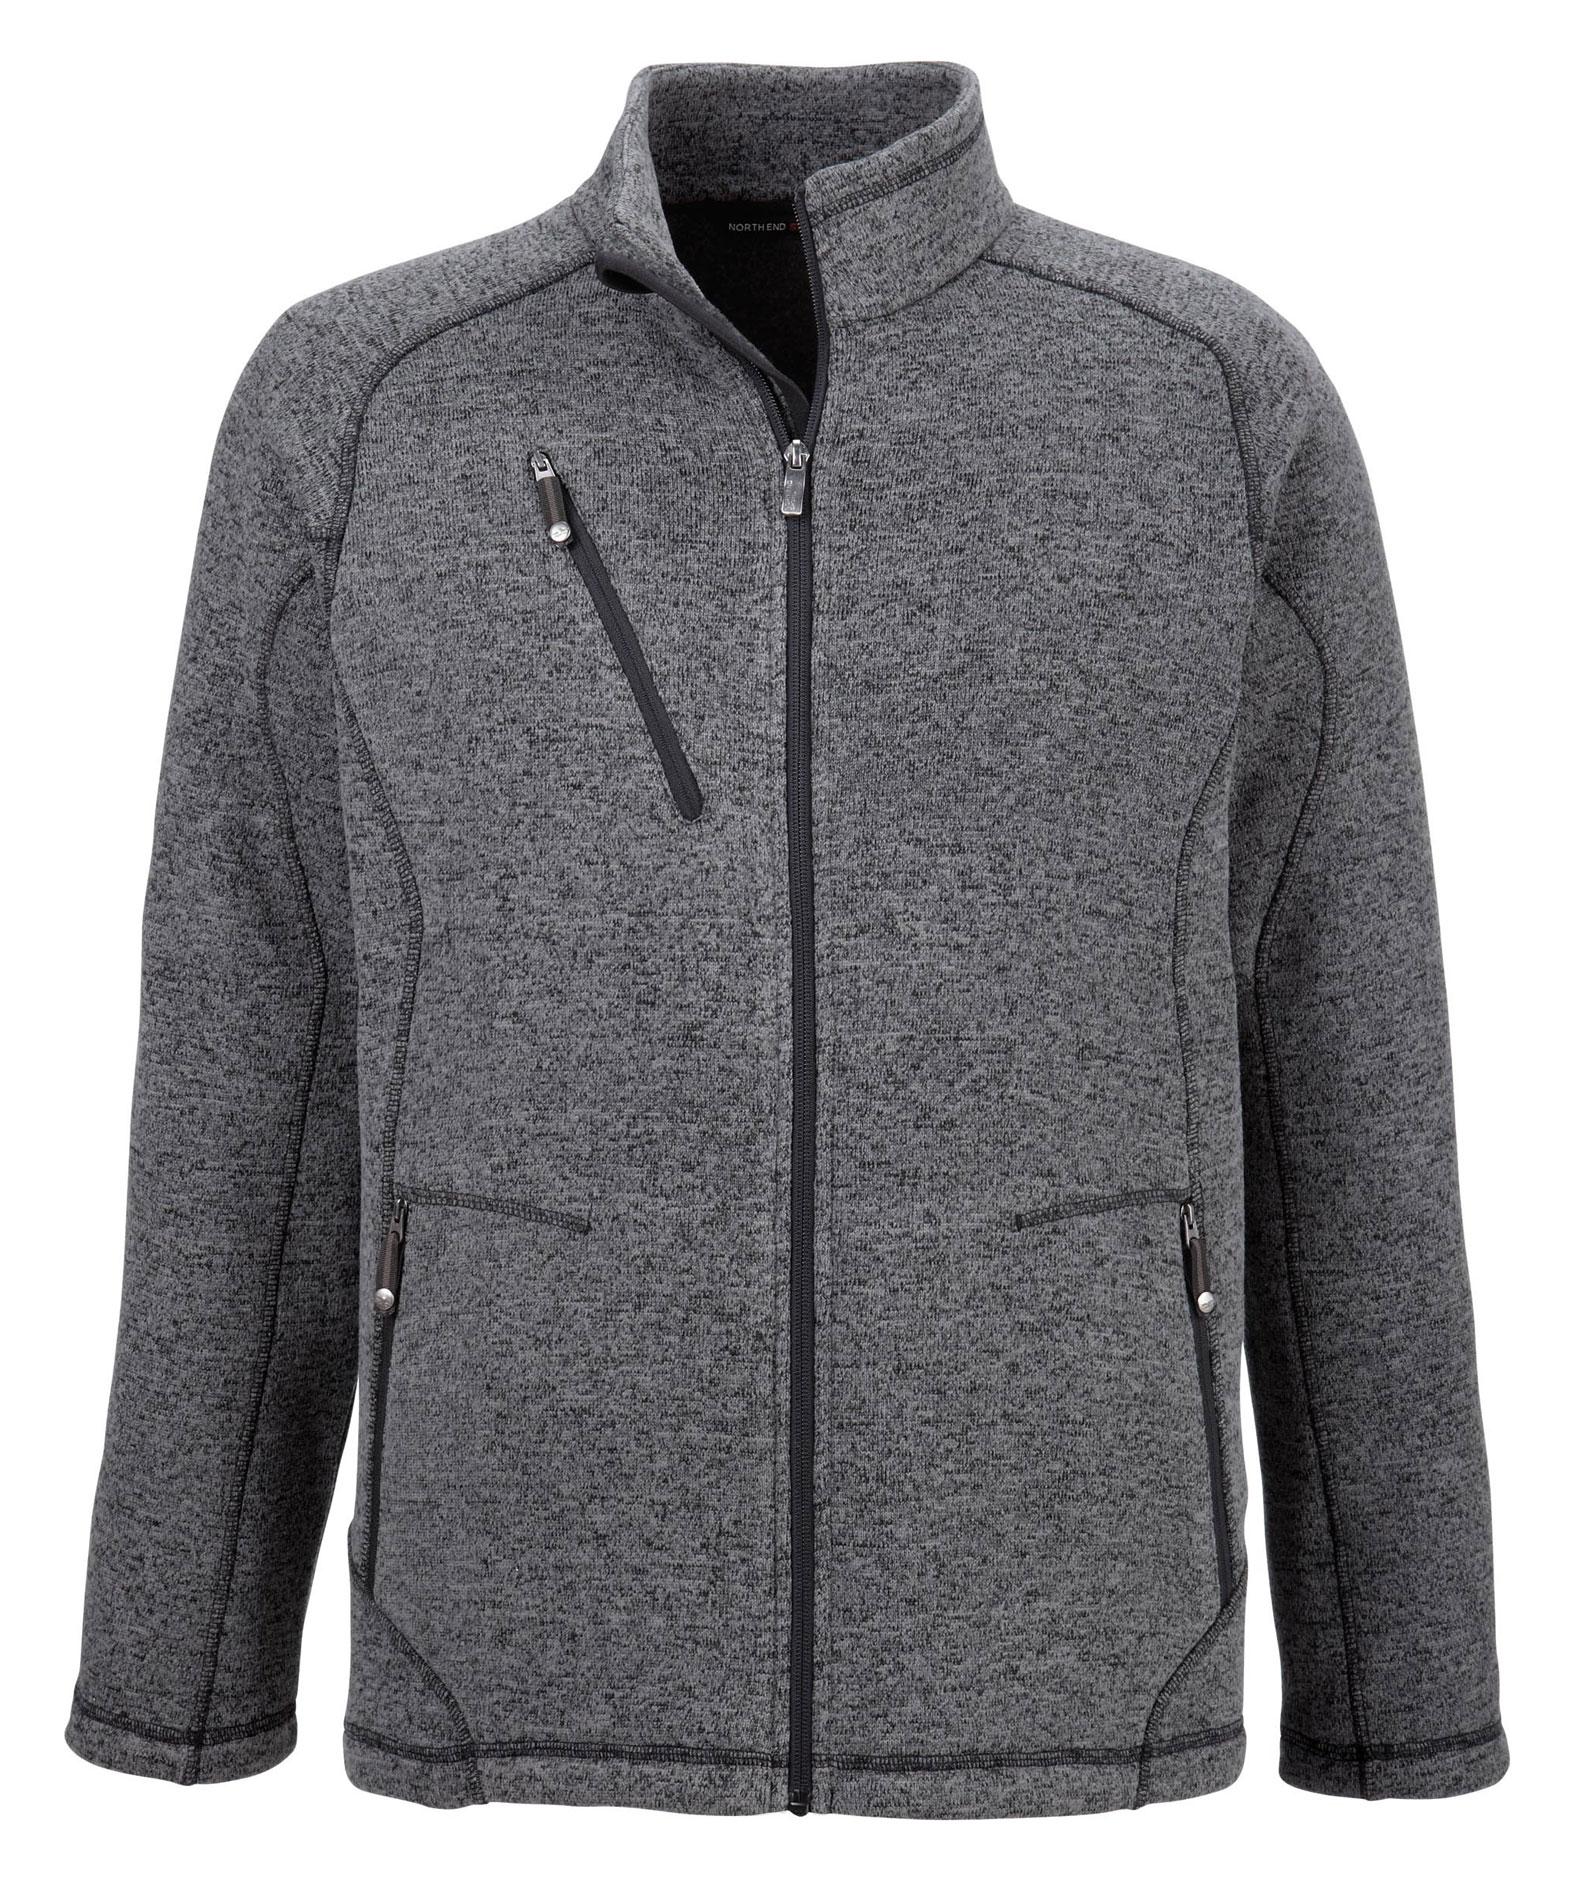 North End Mens Peak Sweater Fleece Jacket